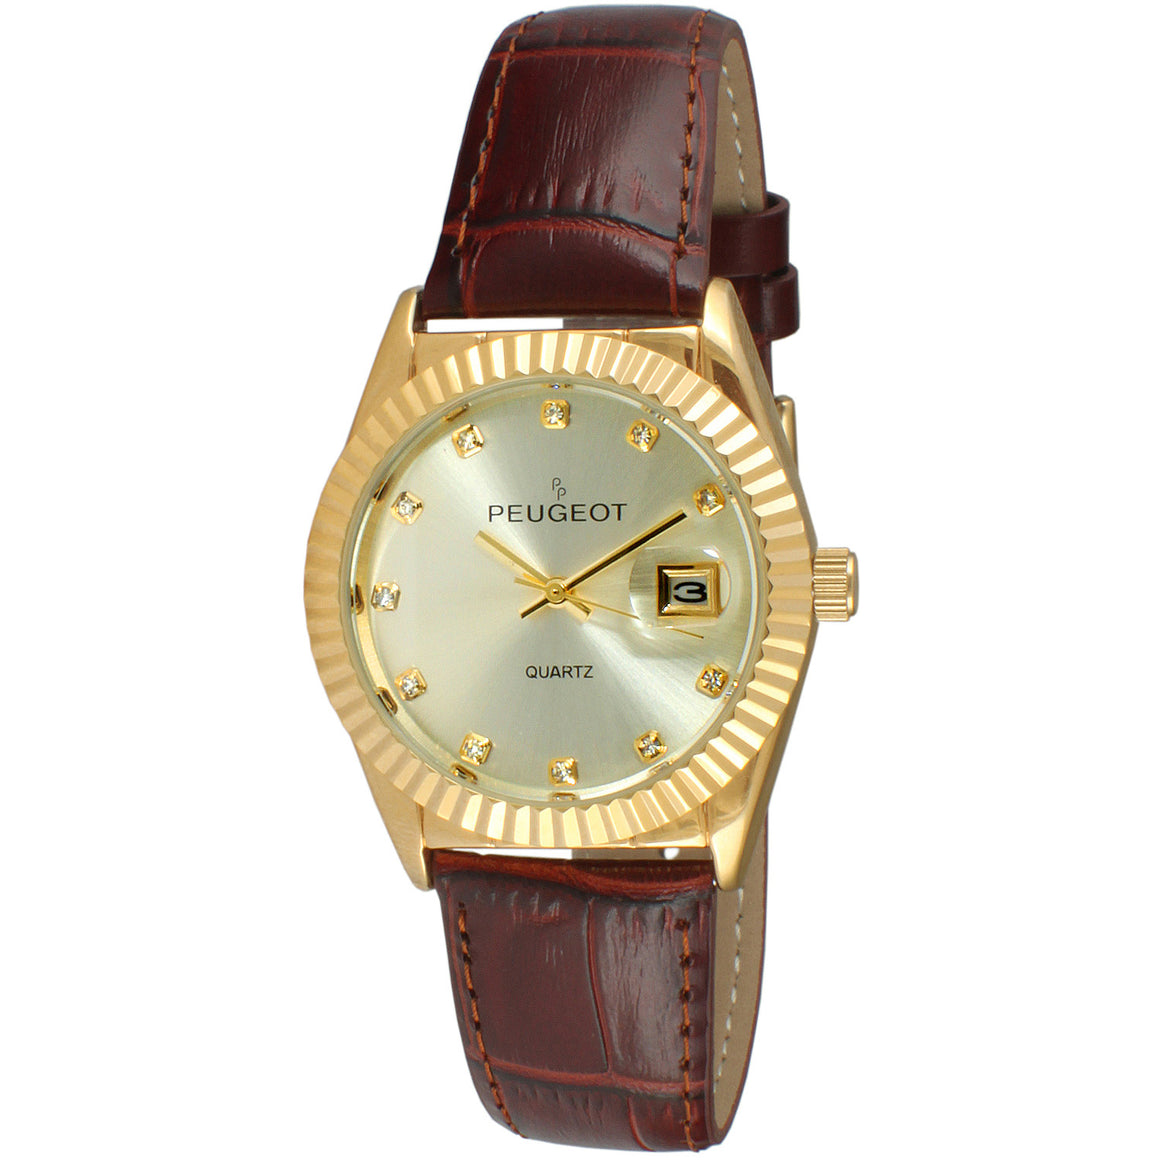 382b292a8023f Coin Edge Bezel Crystal Maker Watch - Gold  Brown